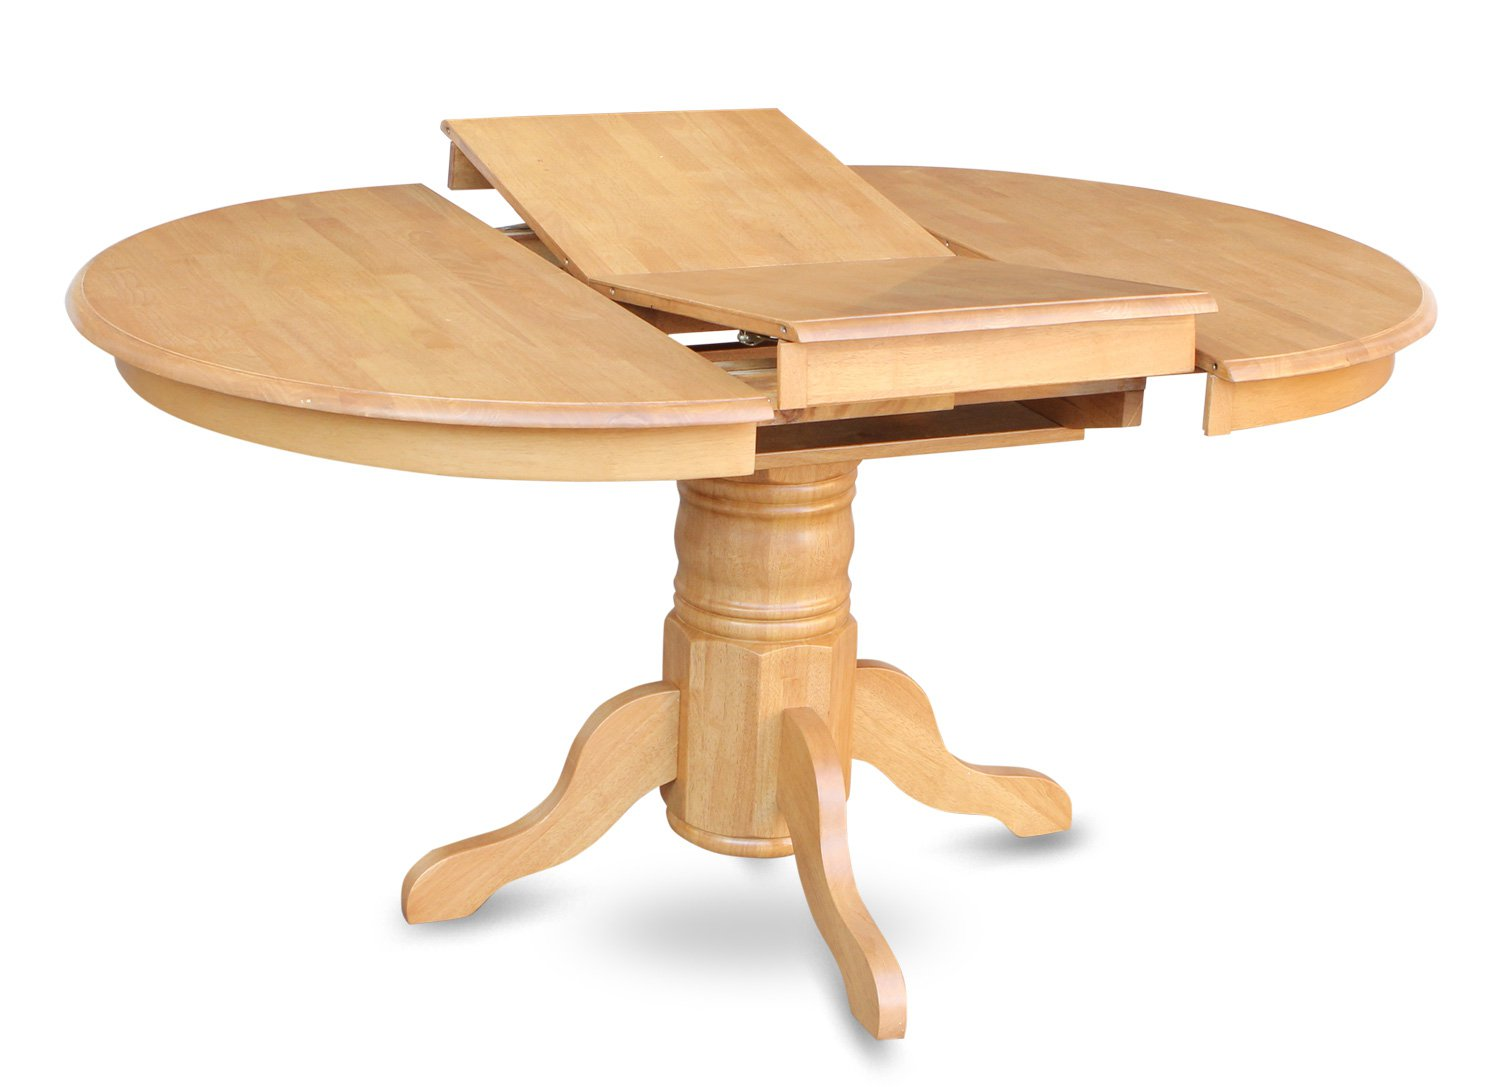 Avon Pedestal Dining Table 42x60 In Light Oak Without